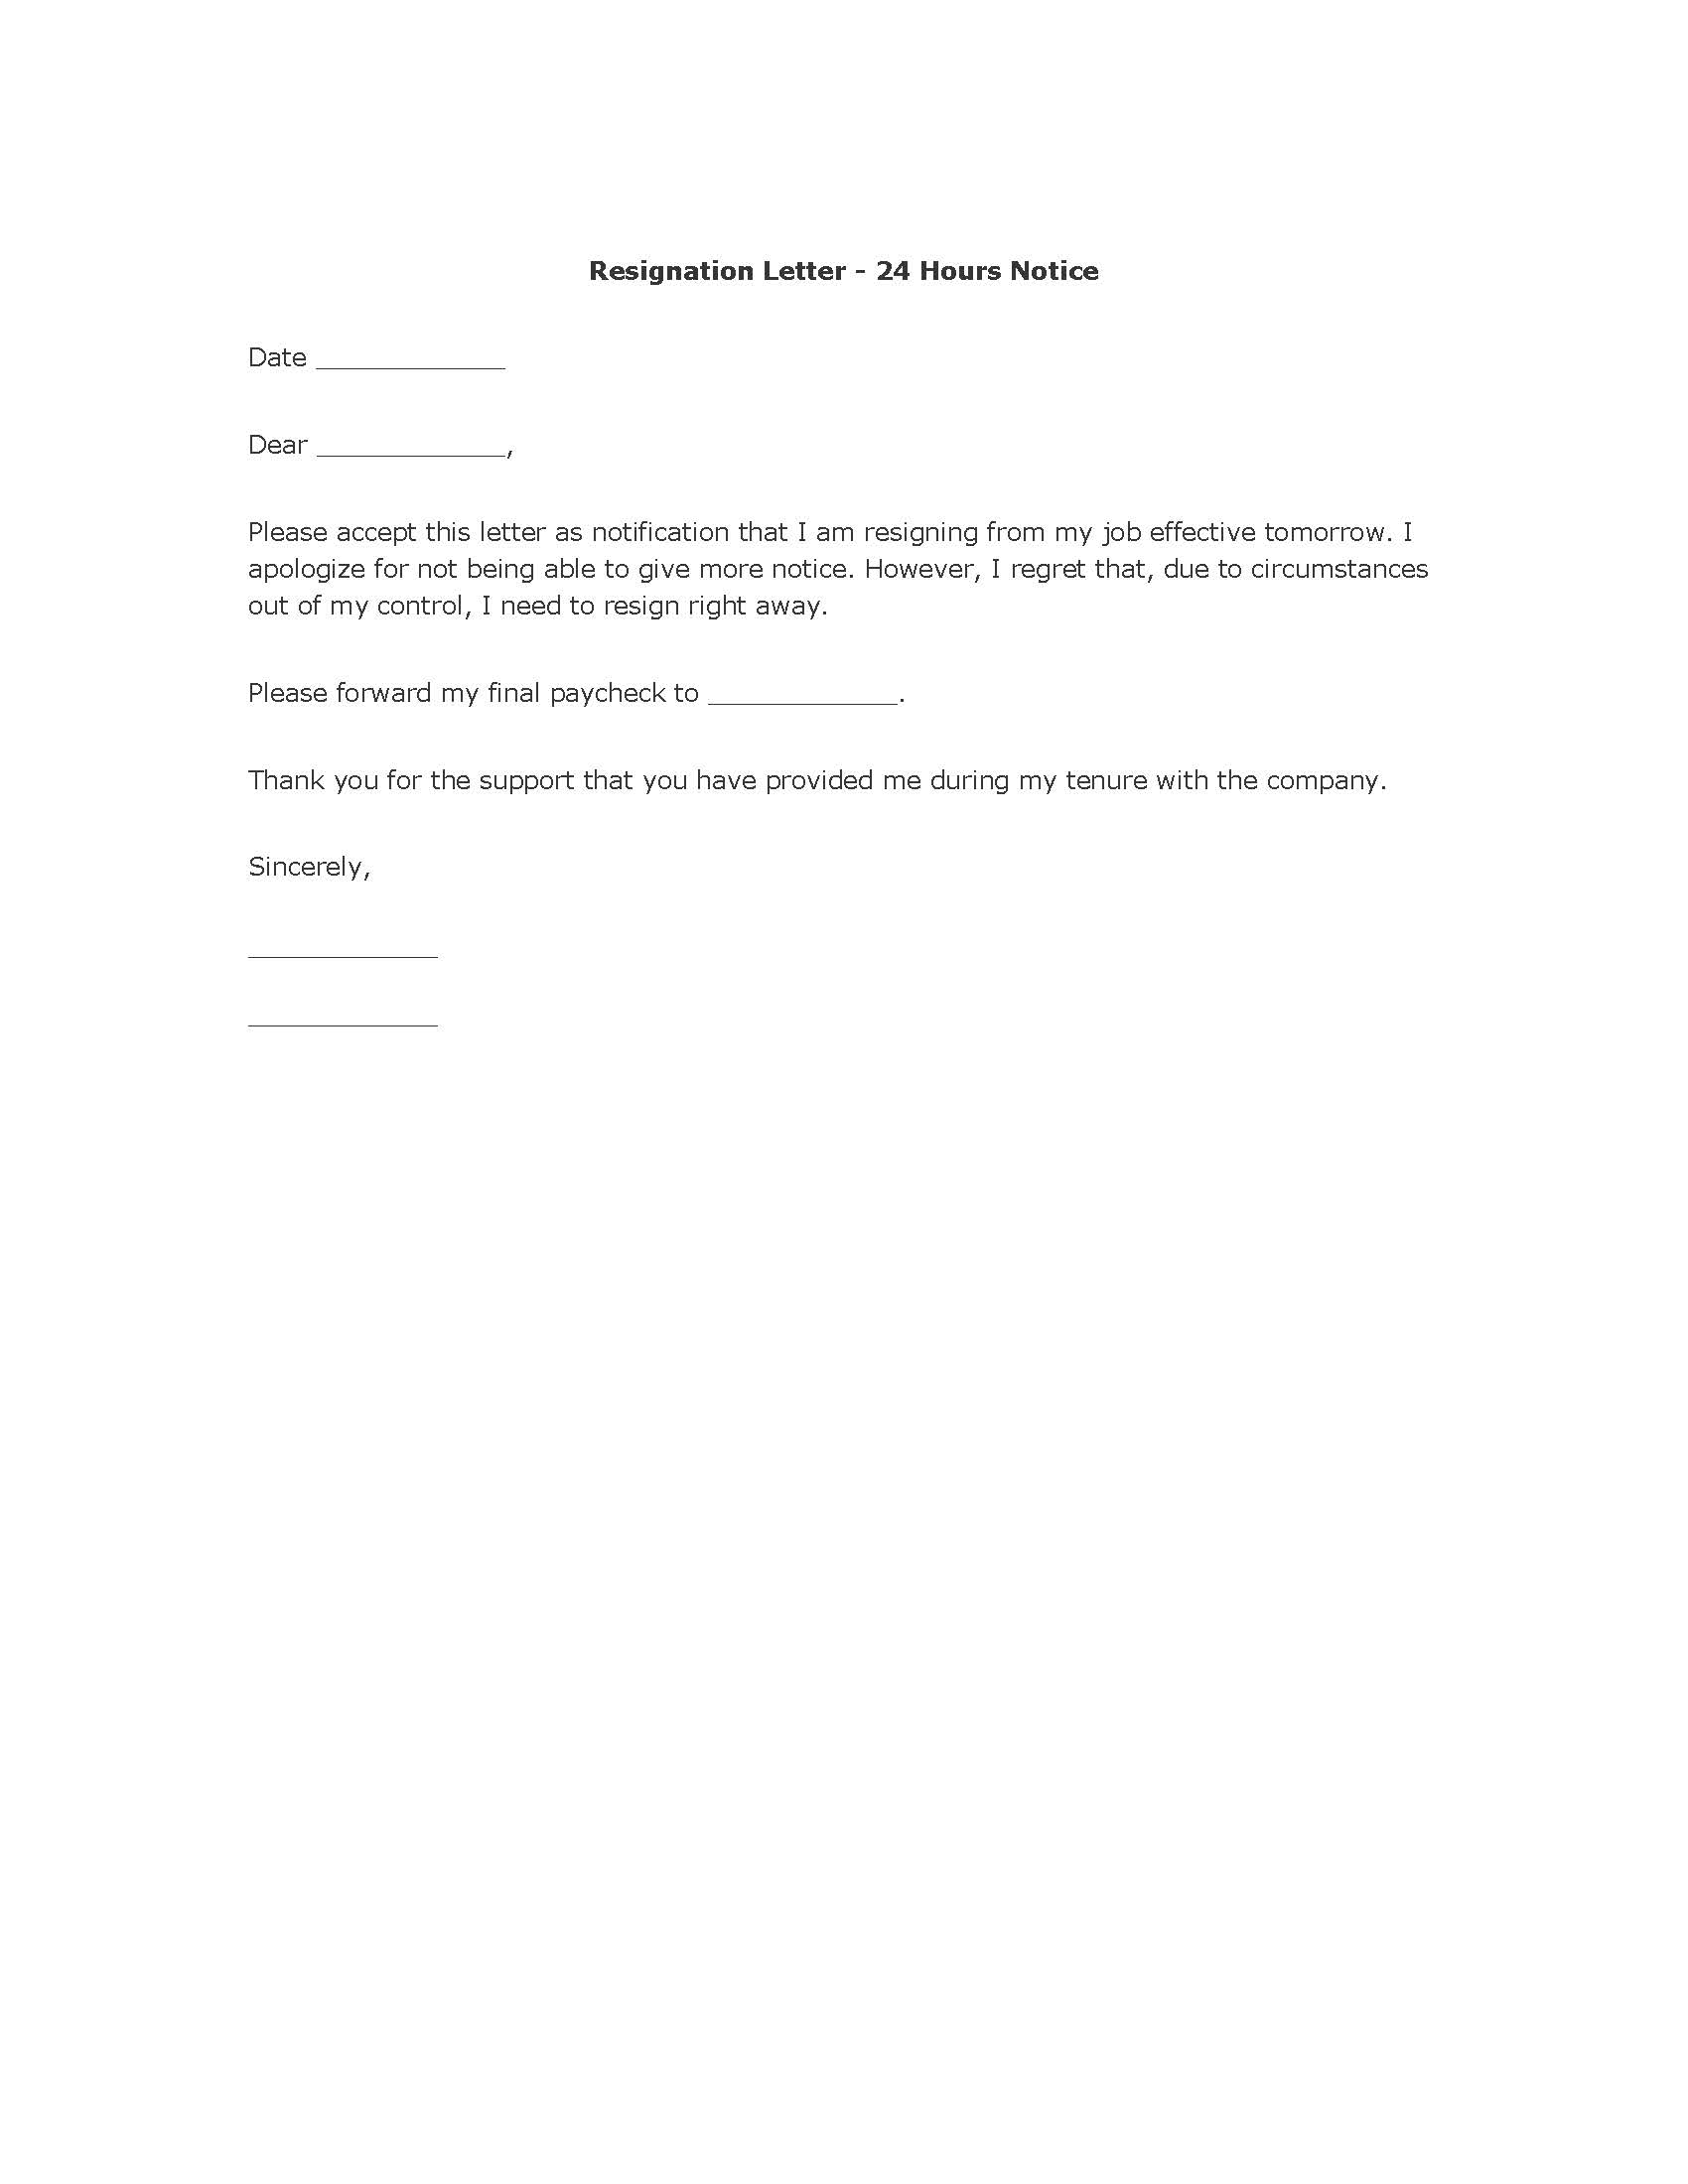 resignation letter notice hour cover letter examples and samples resignation letter notice 24 hour letter of resignation example 24 hours notice letter of resignation